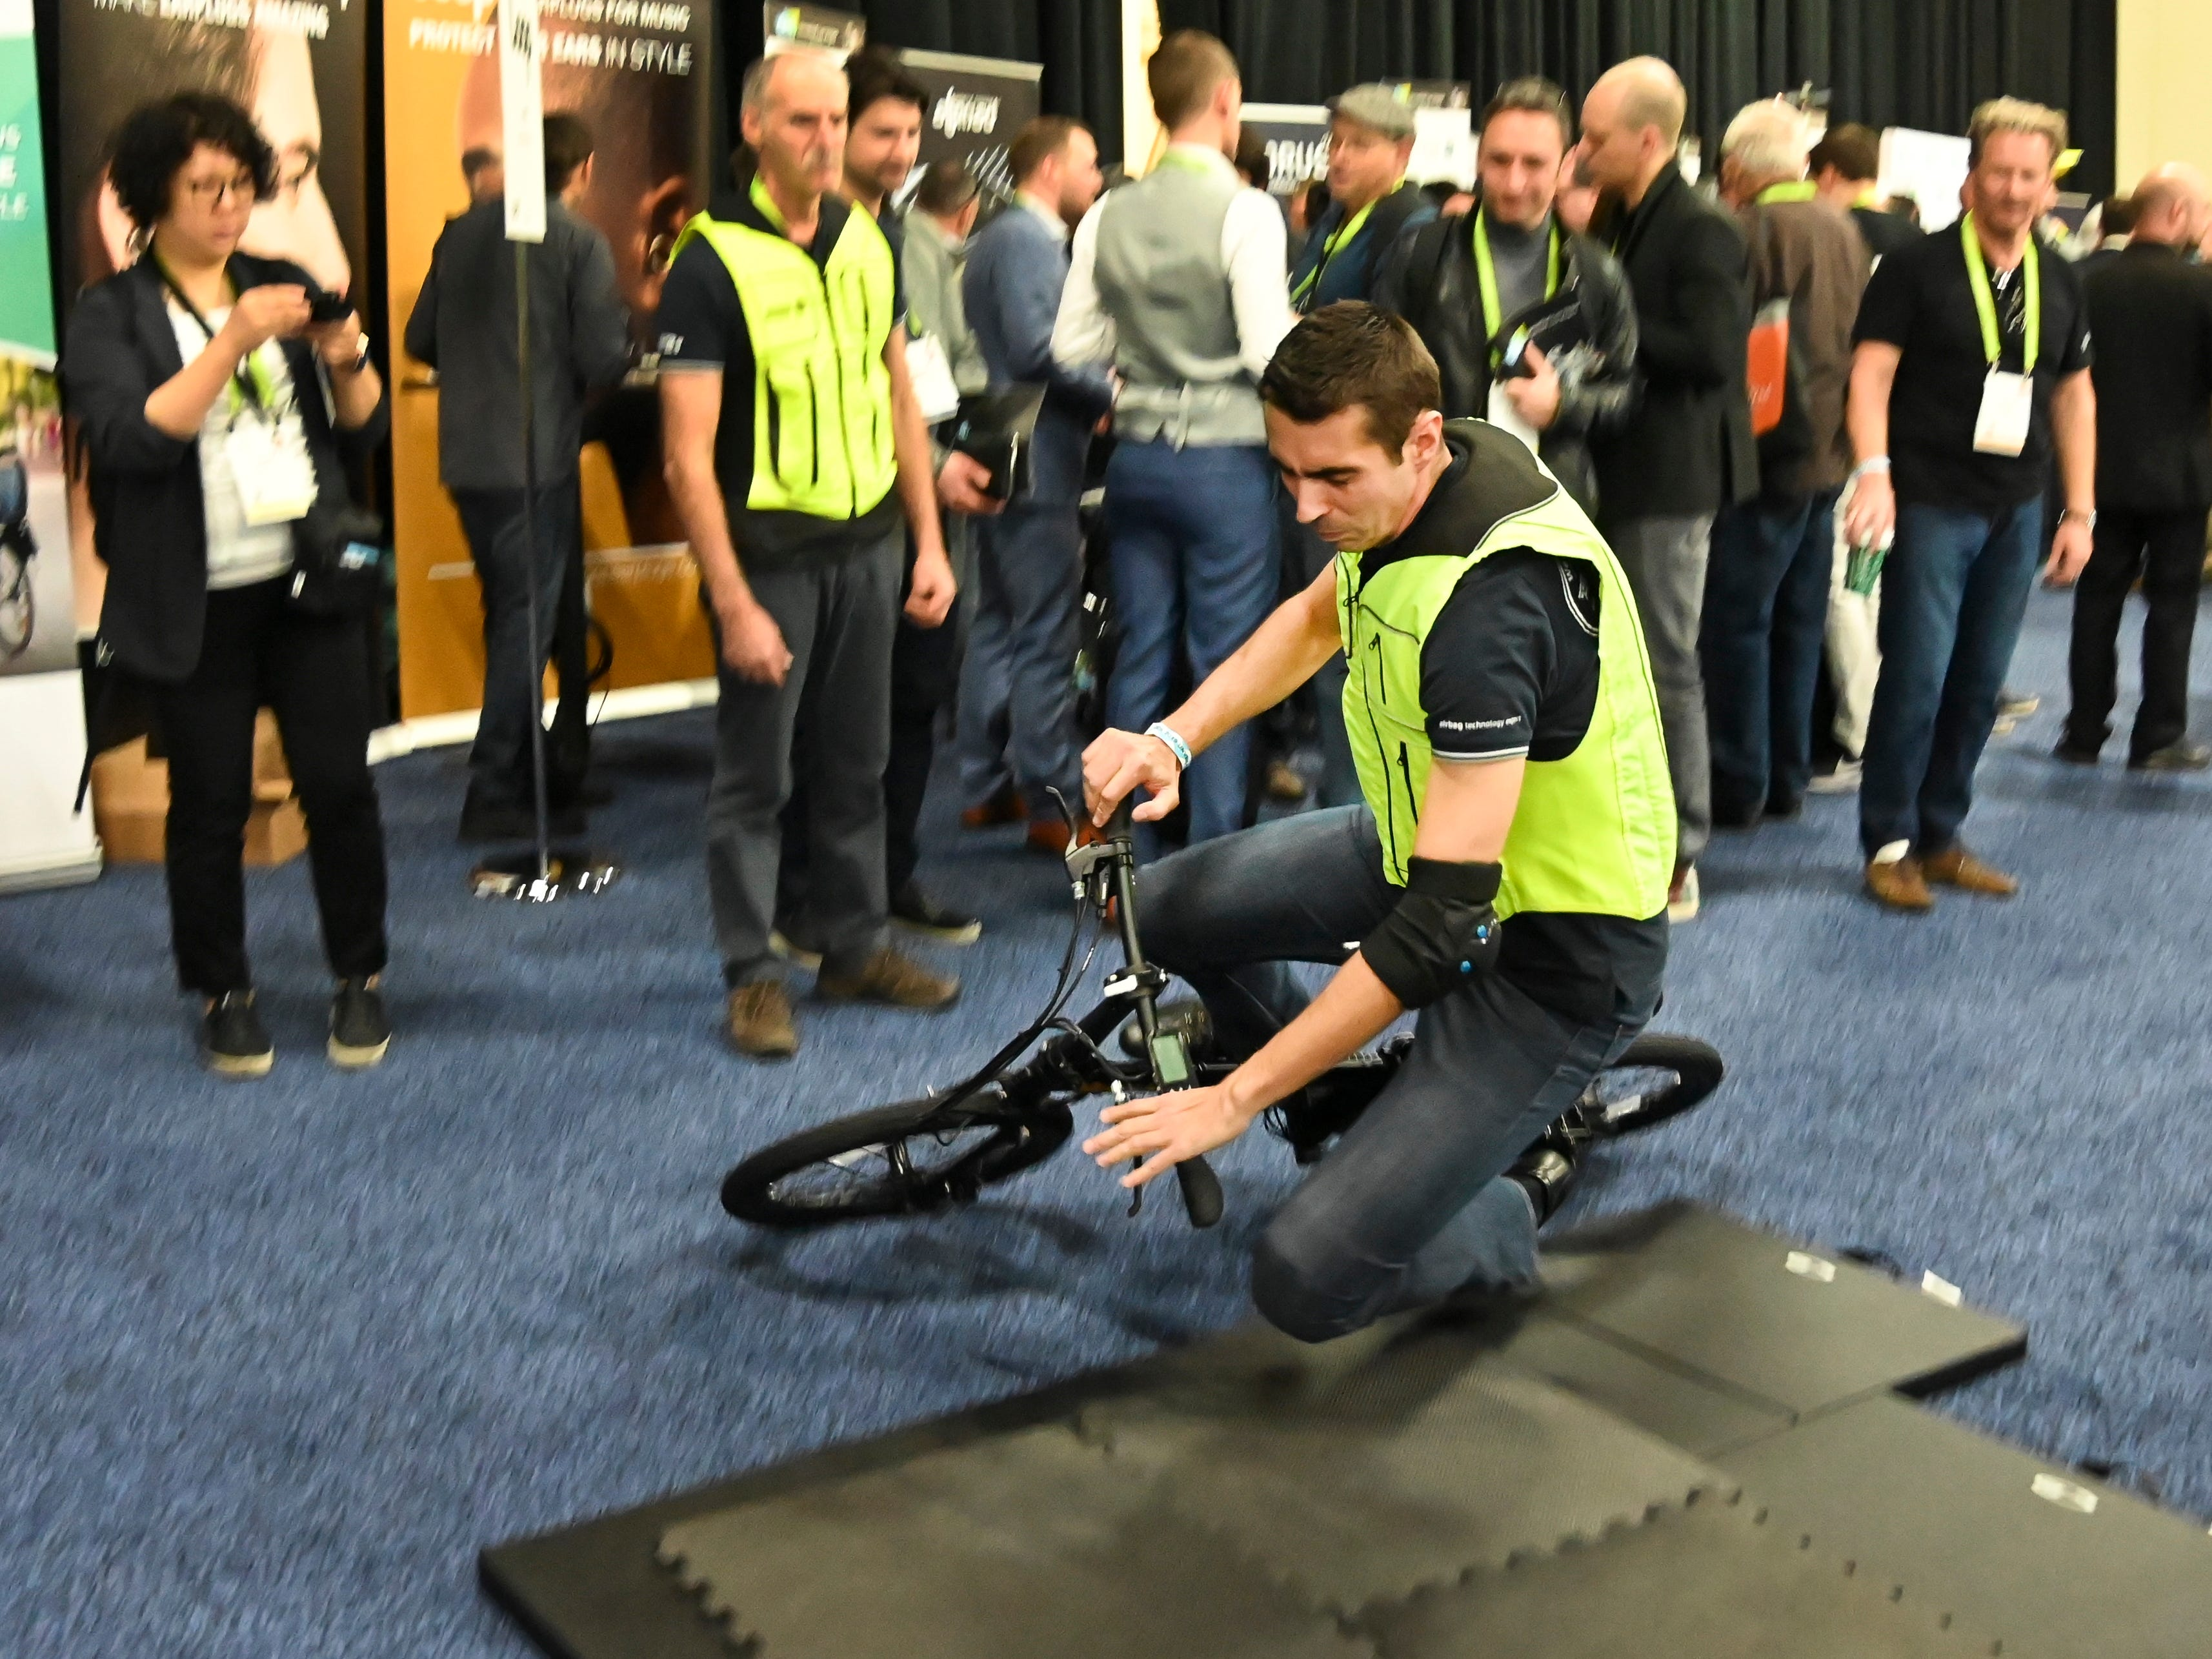 Andrew Quarrey of B'Safe demonstrates the company's smart airbag vest for cyclists.